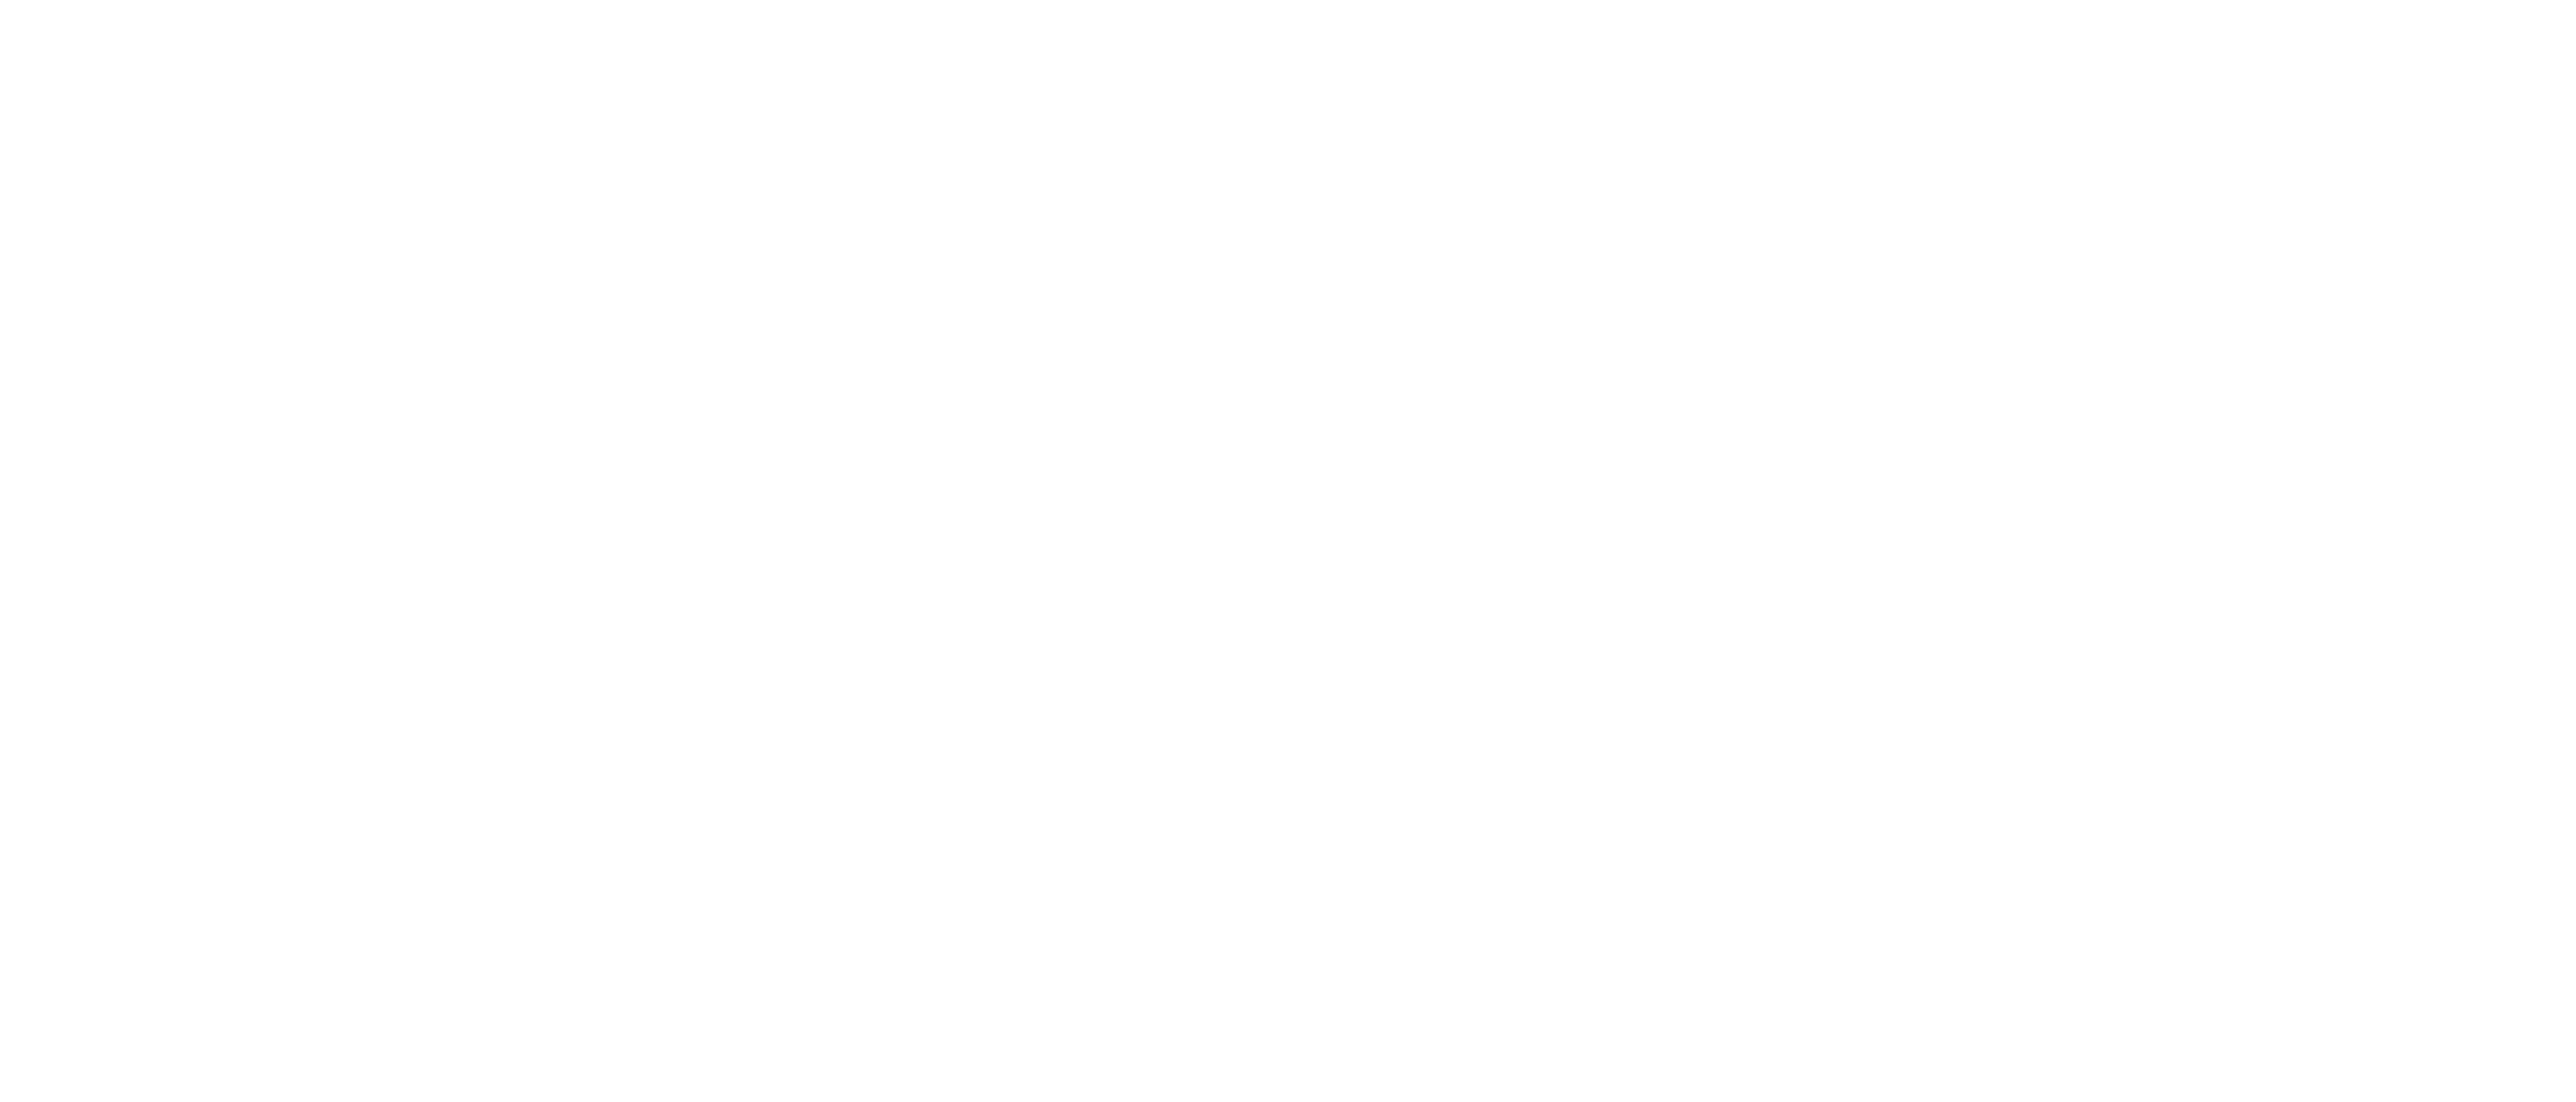 ATMS Watch logo